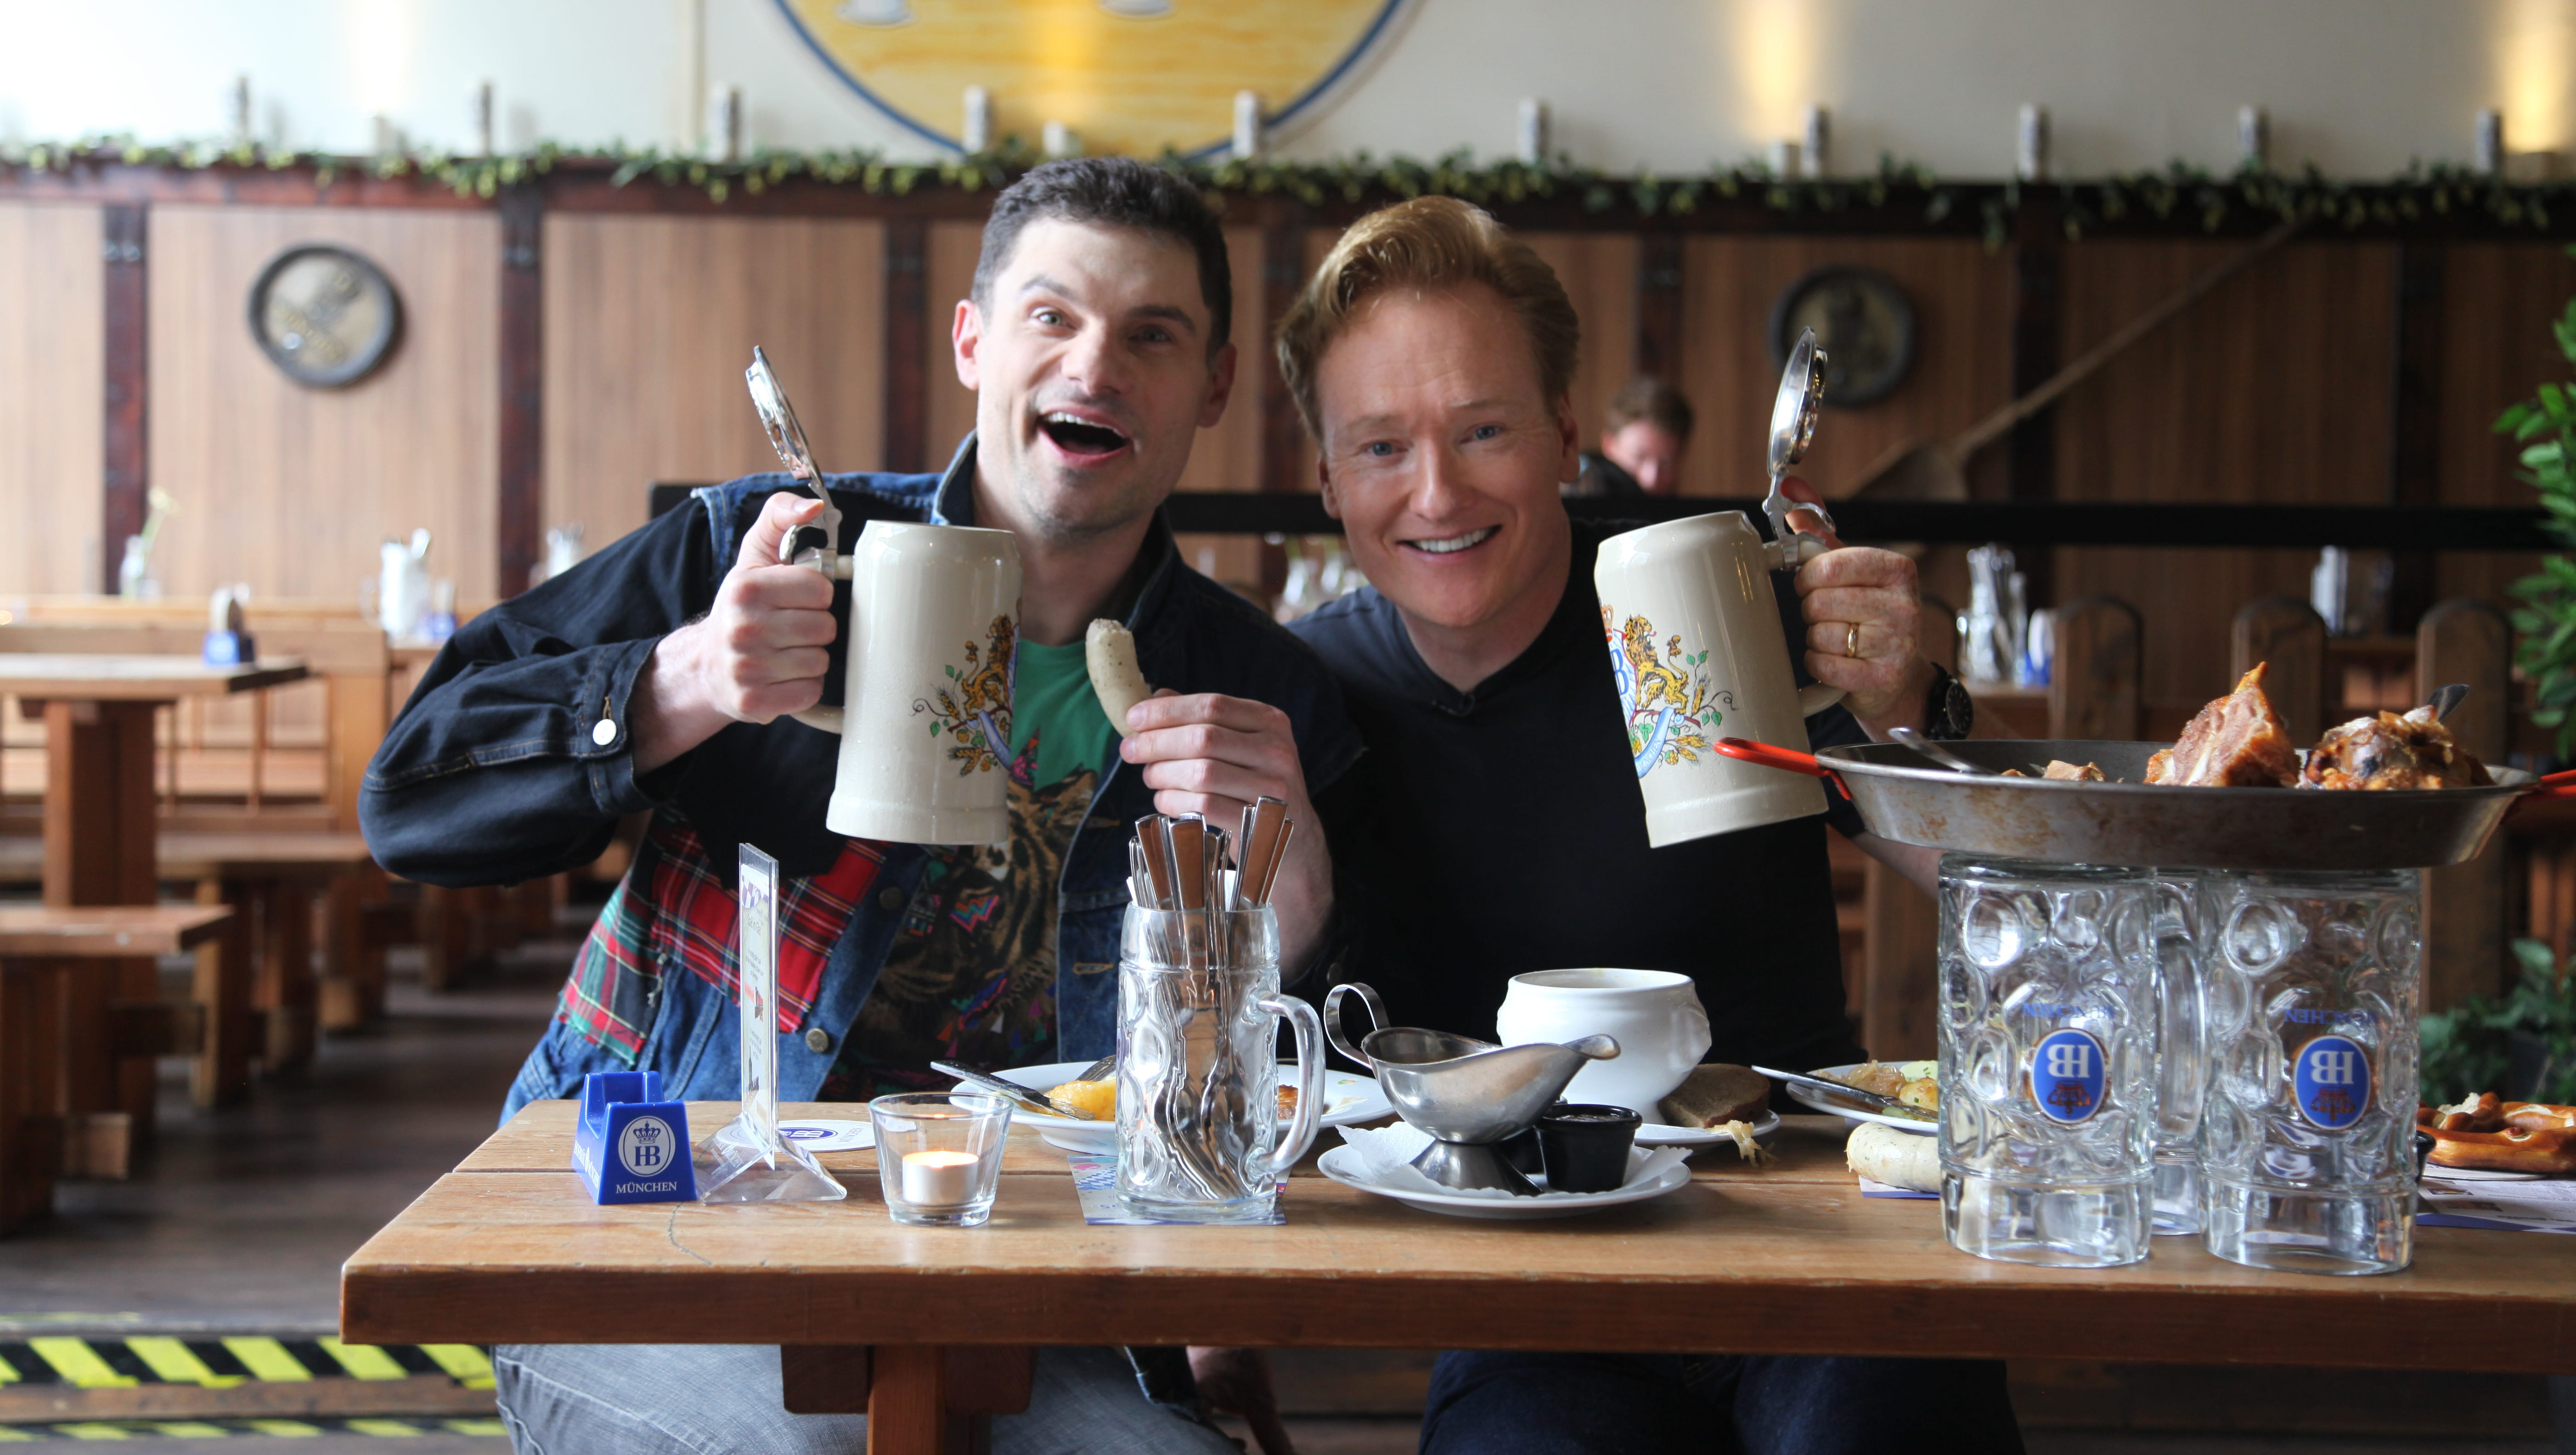 Andy Richter Nude conan o'brien takes berlin in new special